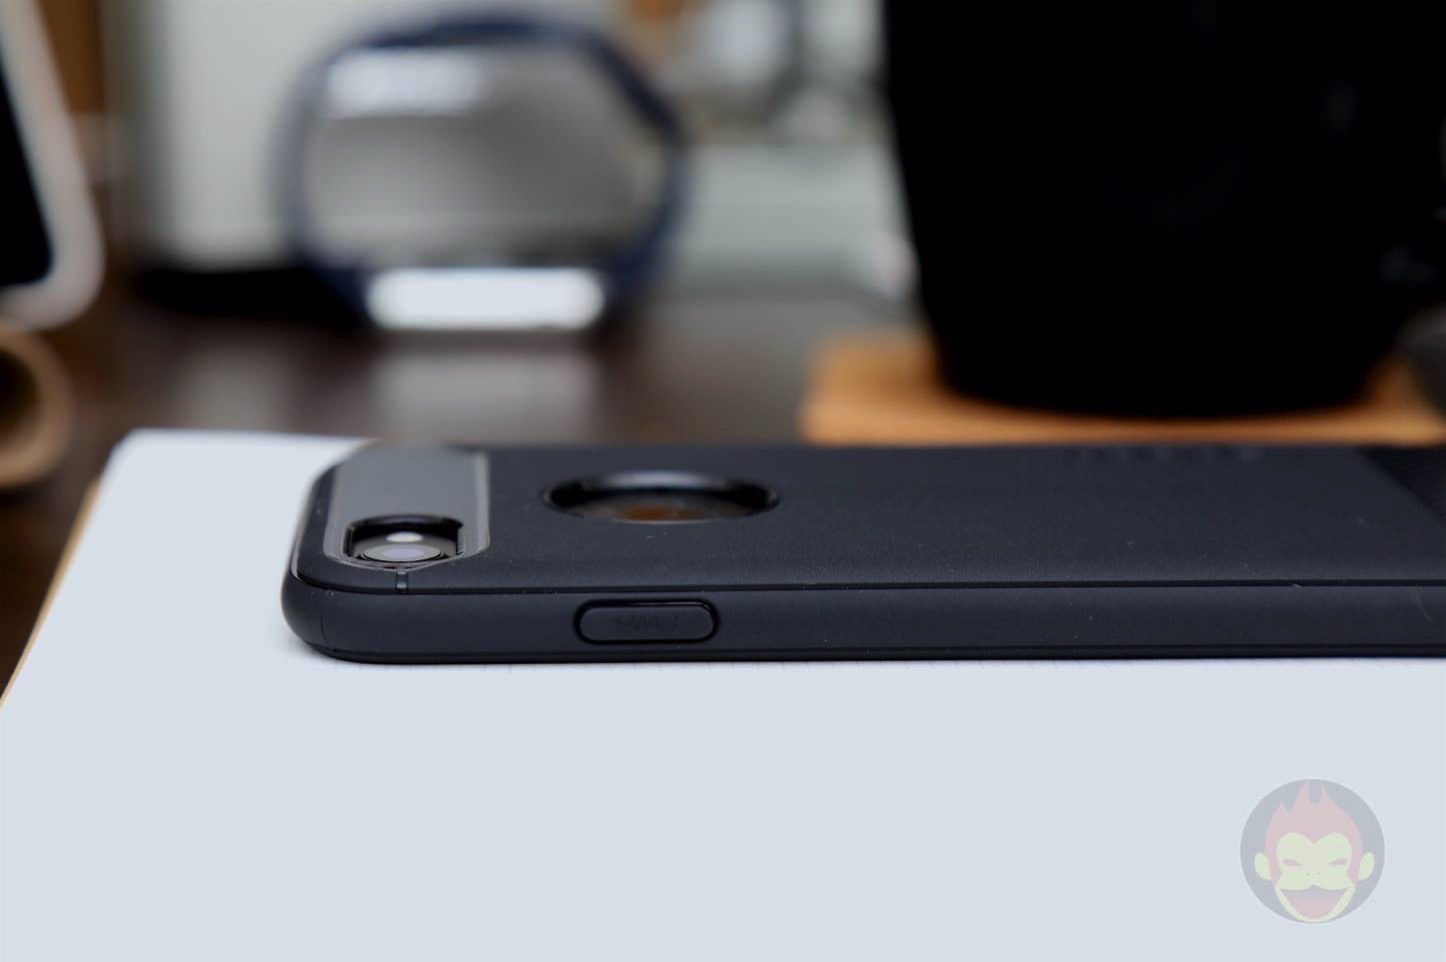 Rugged-Armor-for-iPhone7-7Plus-09.jpg